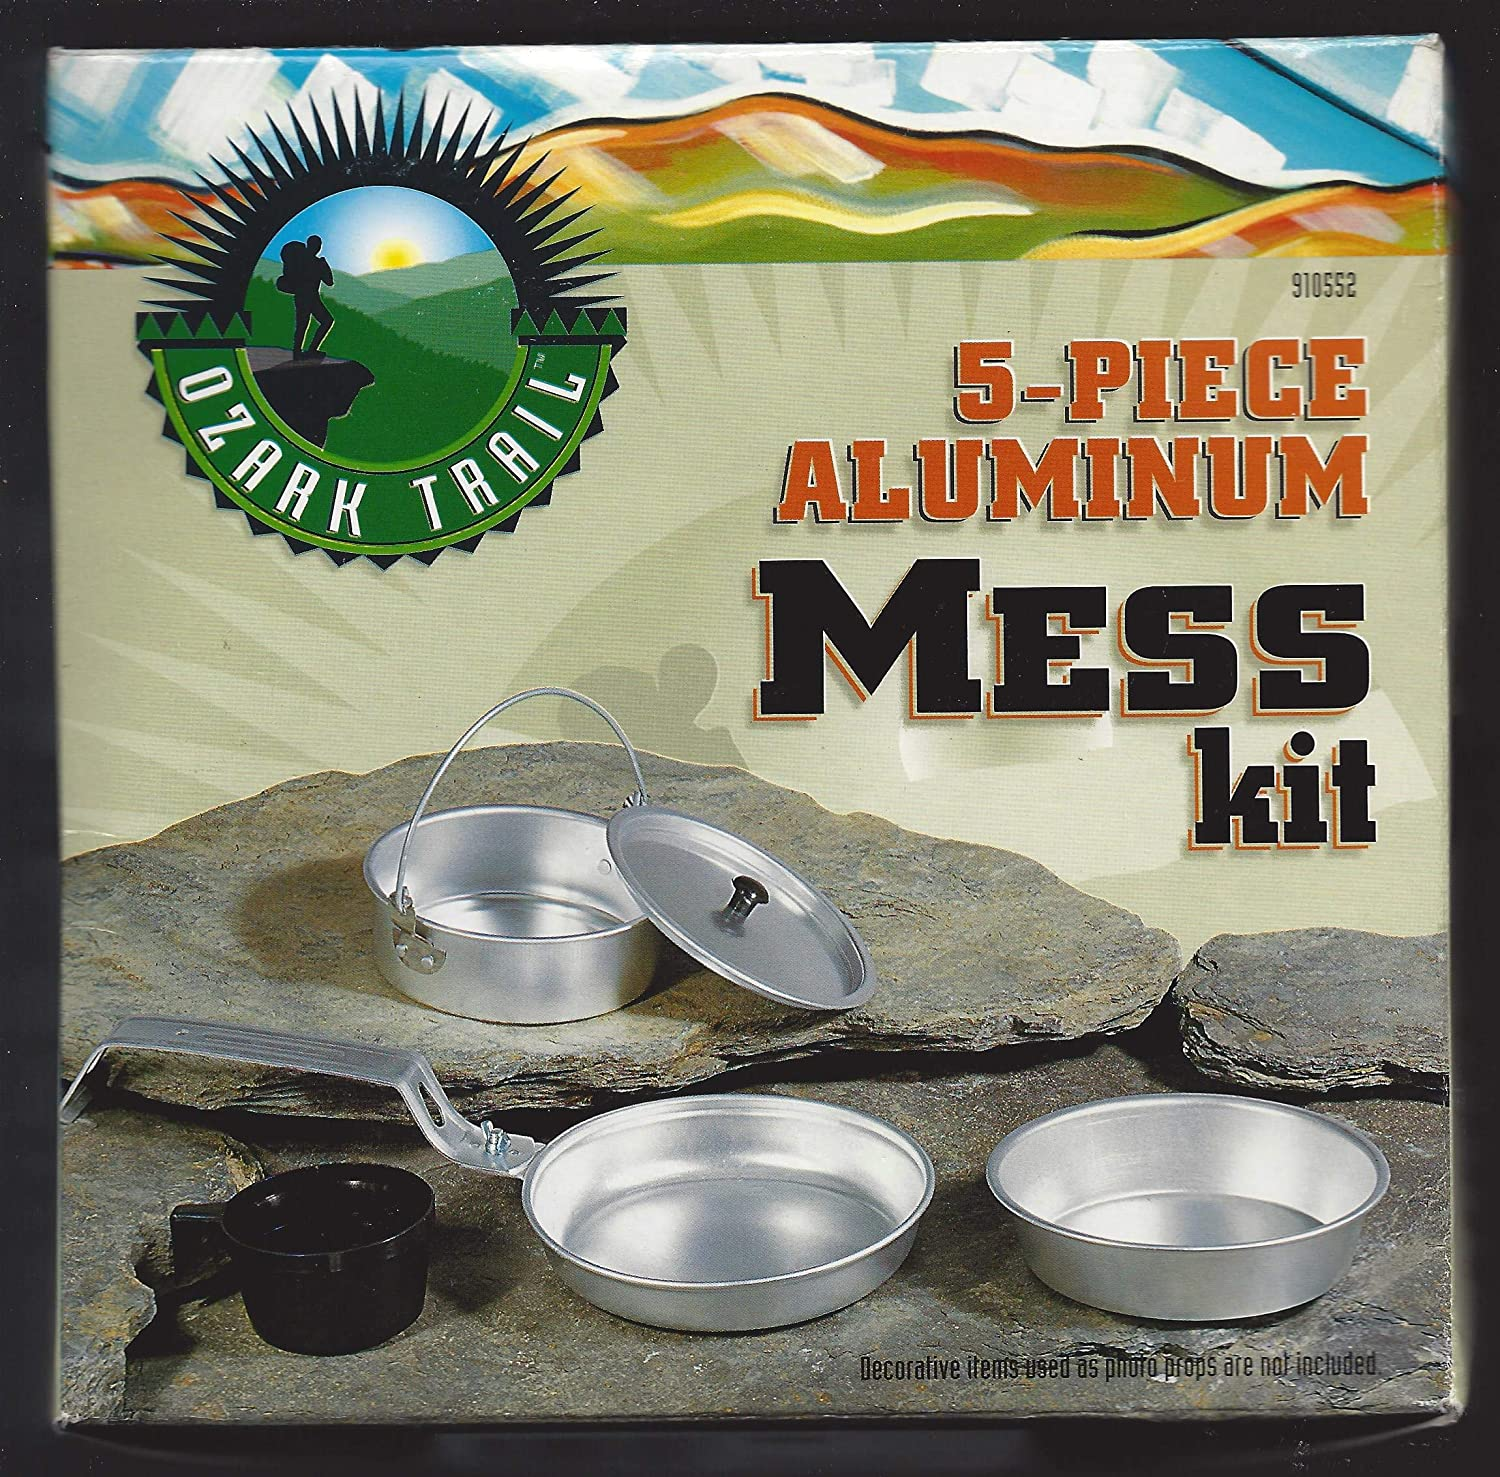 Ozark Trail Limited time cheap sale 5 - Mess Piece Kit Aluminum Chicago Mall